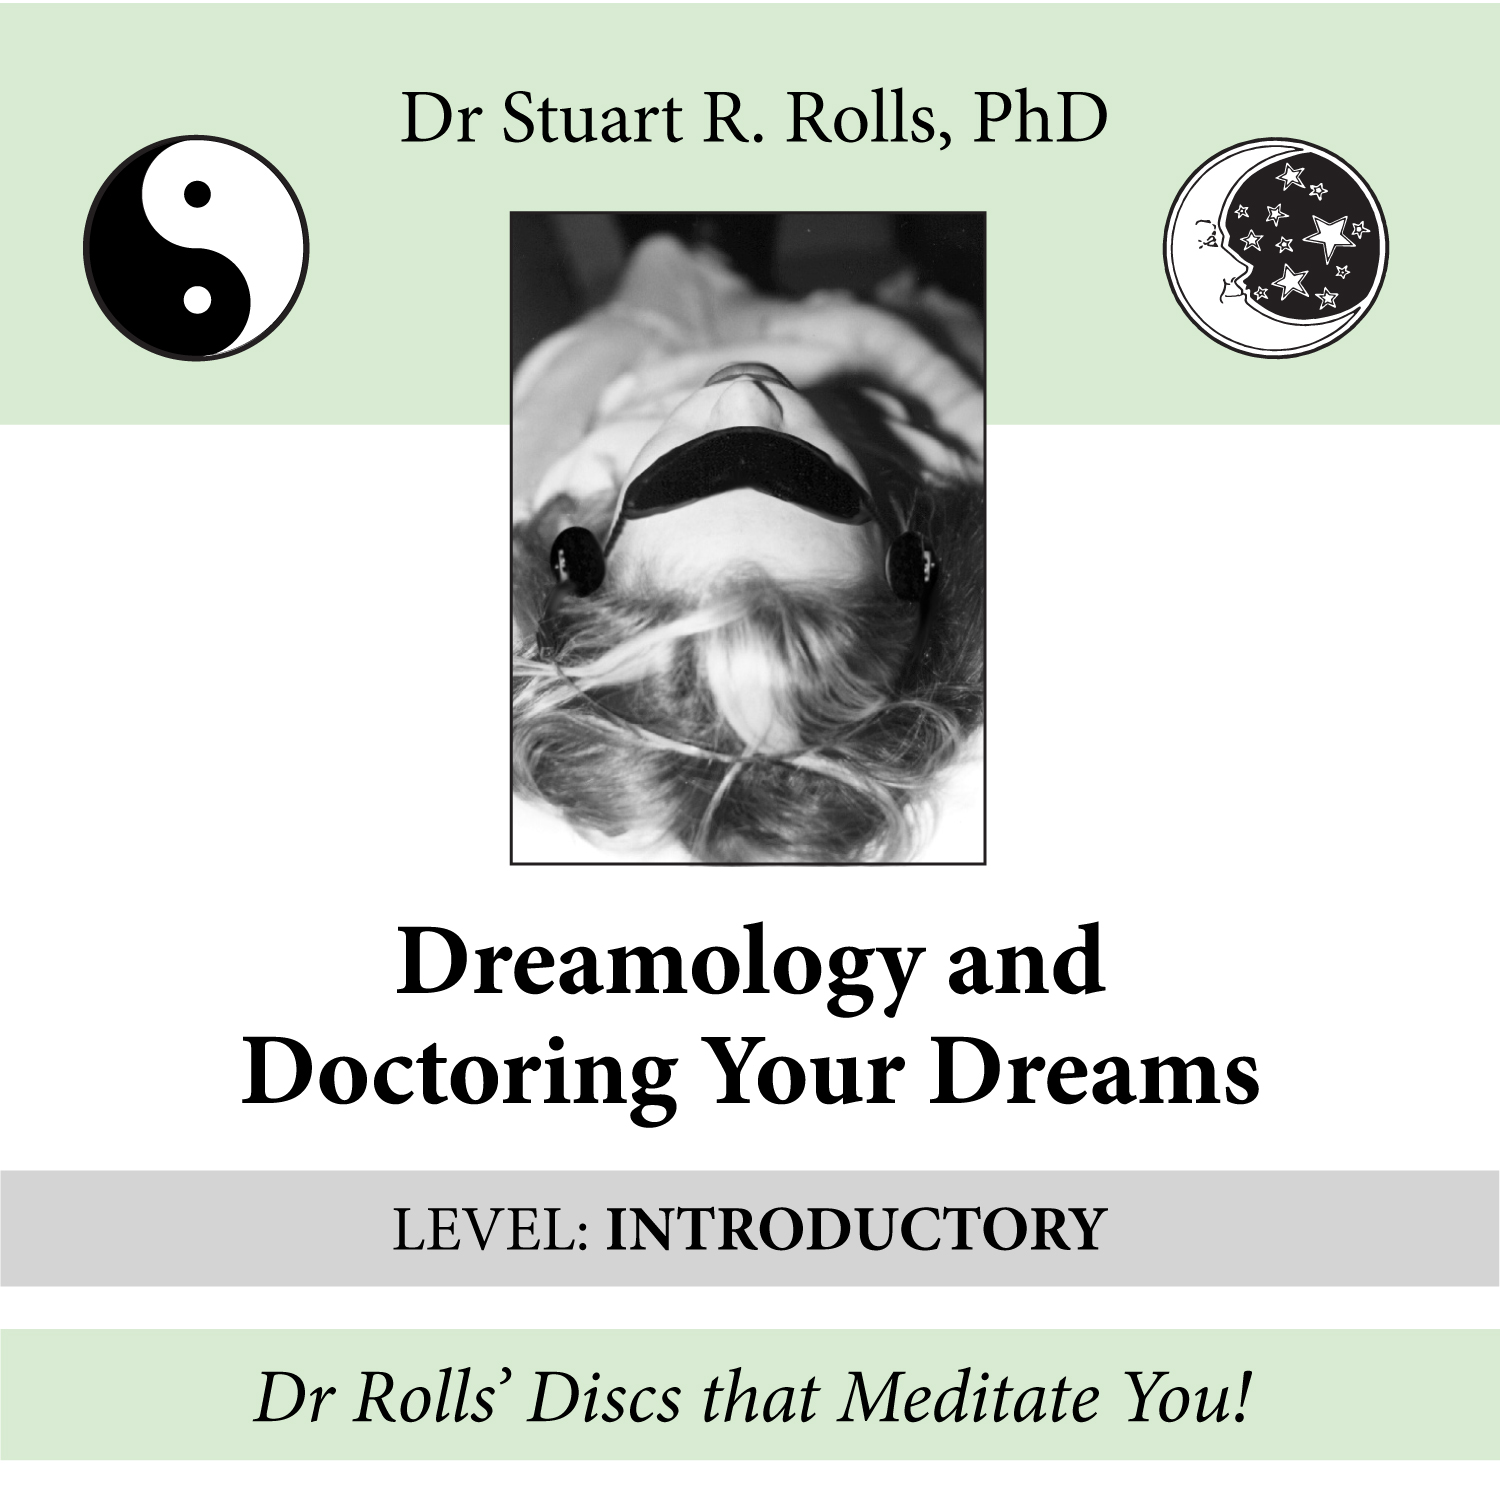 Dreamology and Doctoring Your Dreams (Introductory Level)